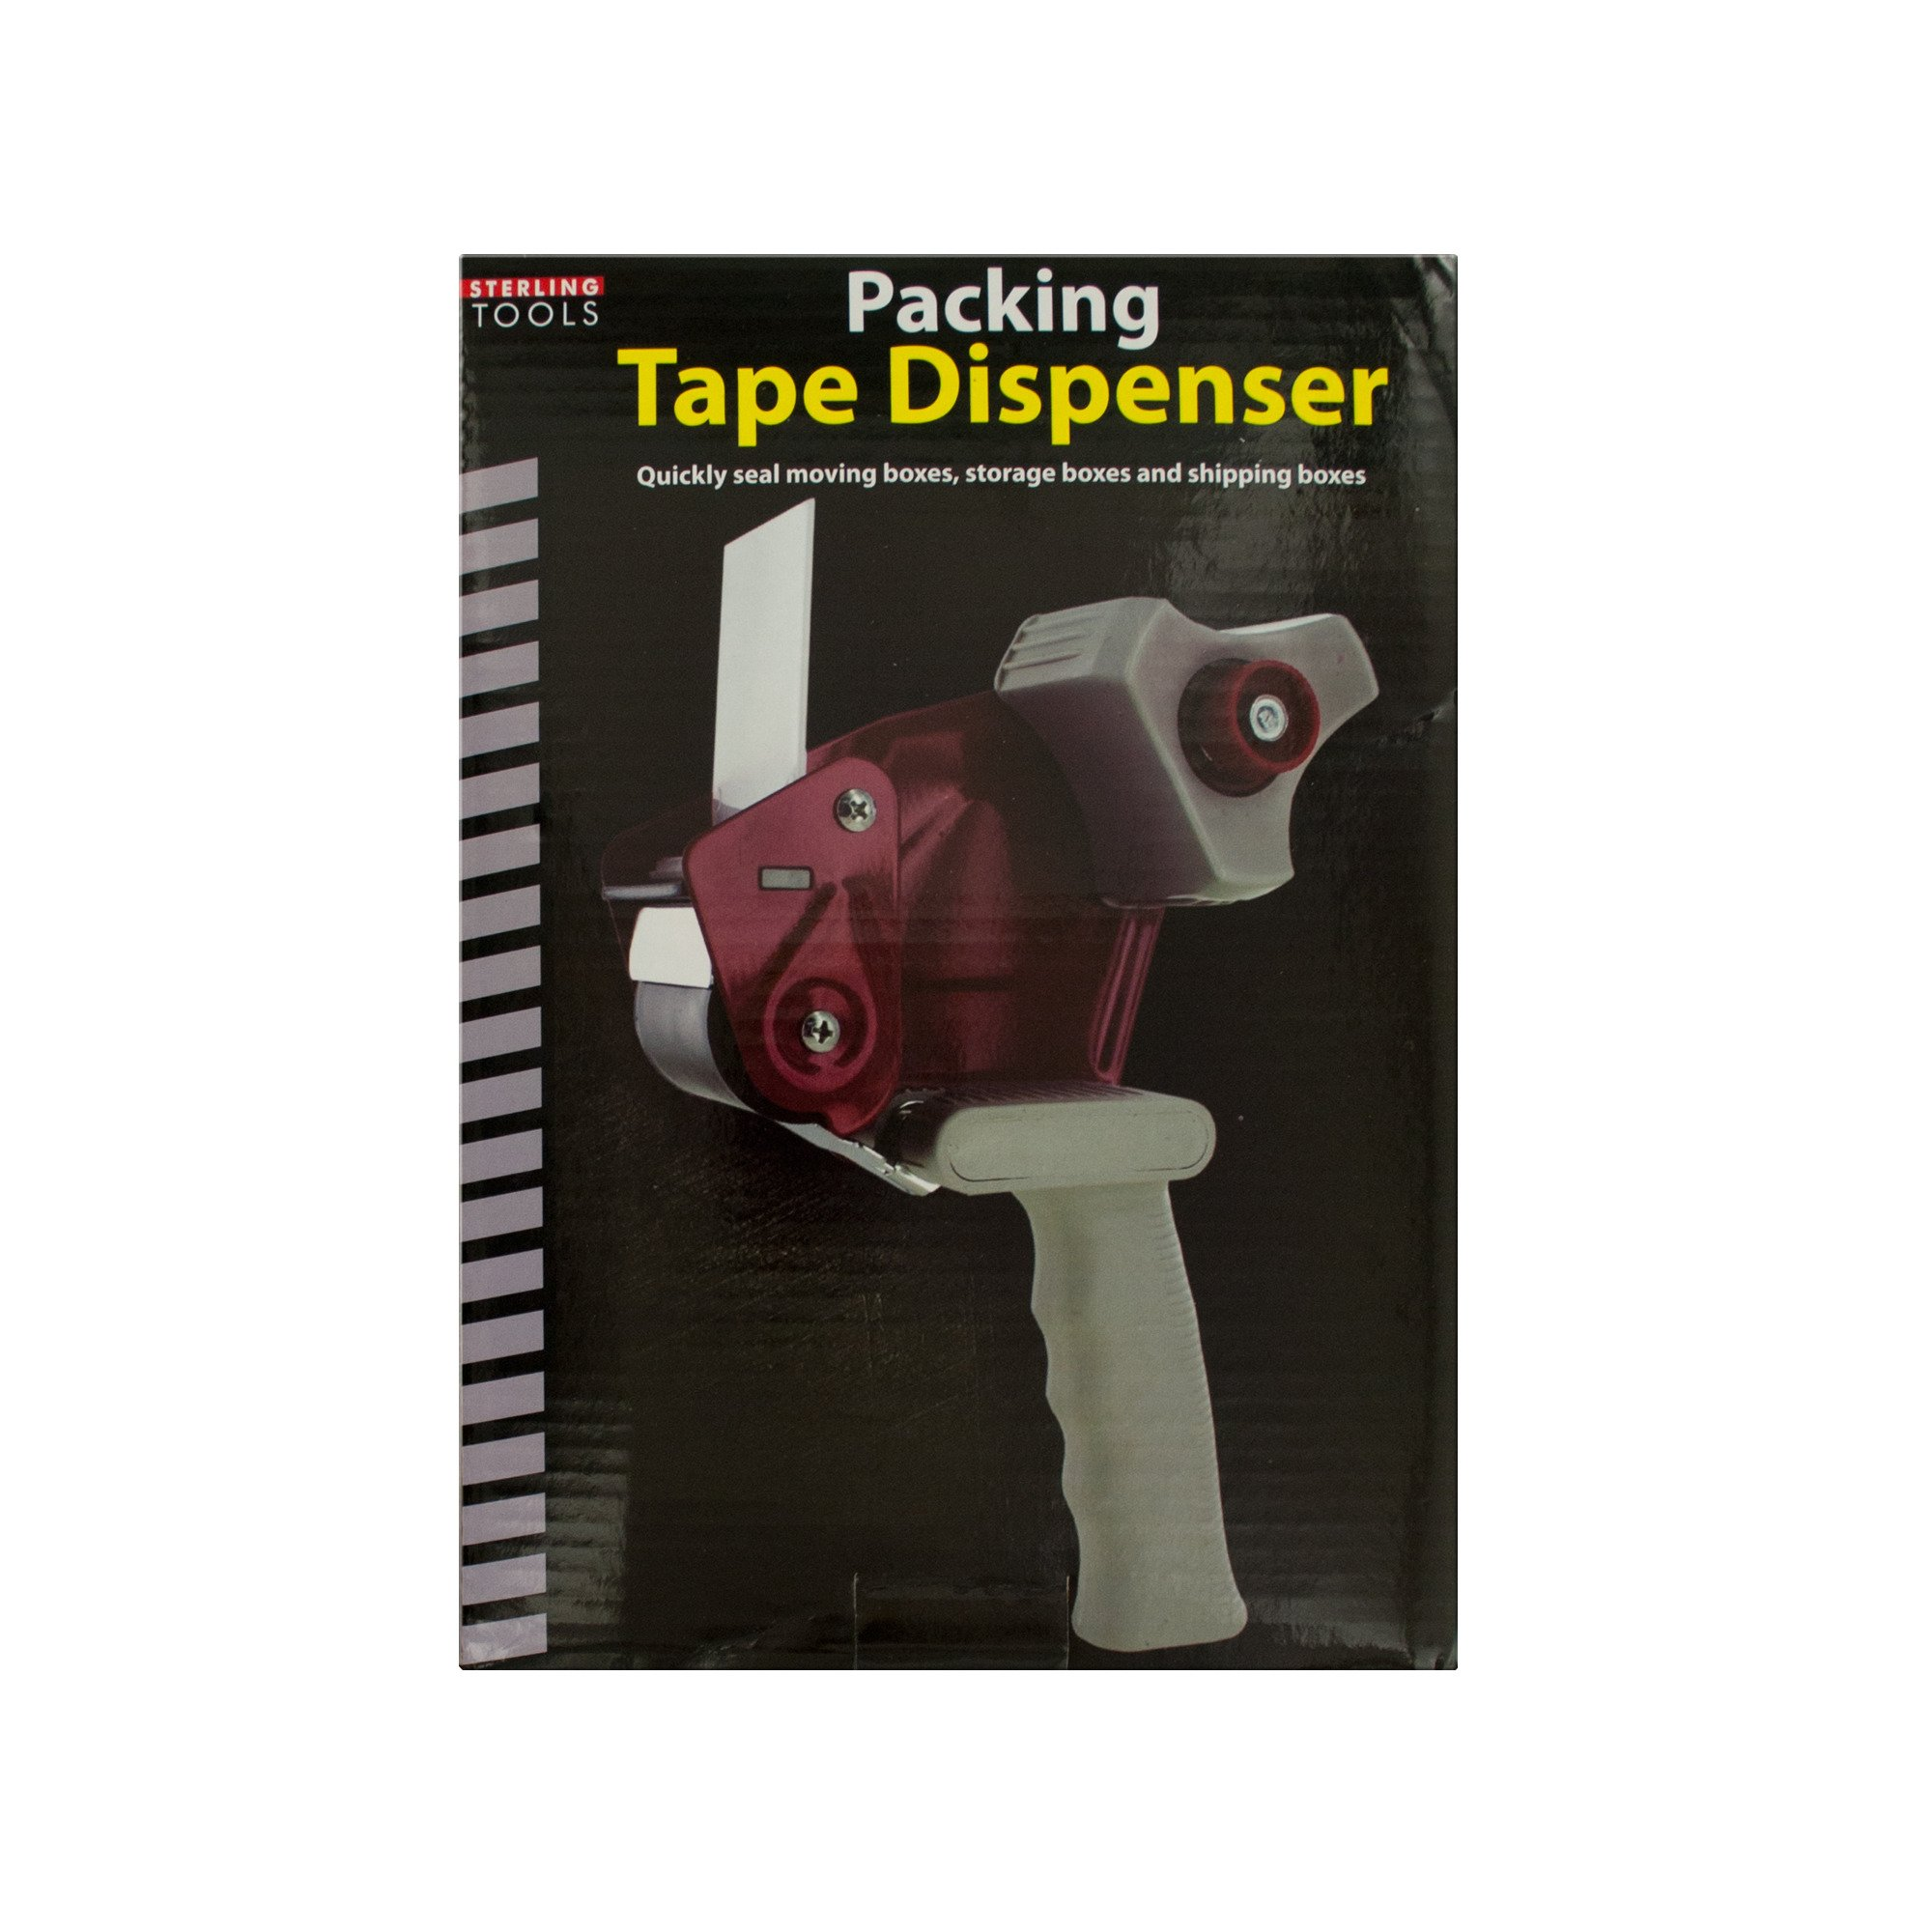 123-Wholesale - Set of 12 Packing Tape Dispenser - School & Office Supplies Shipping Supplies